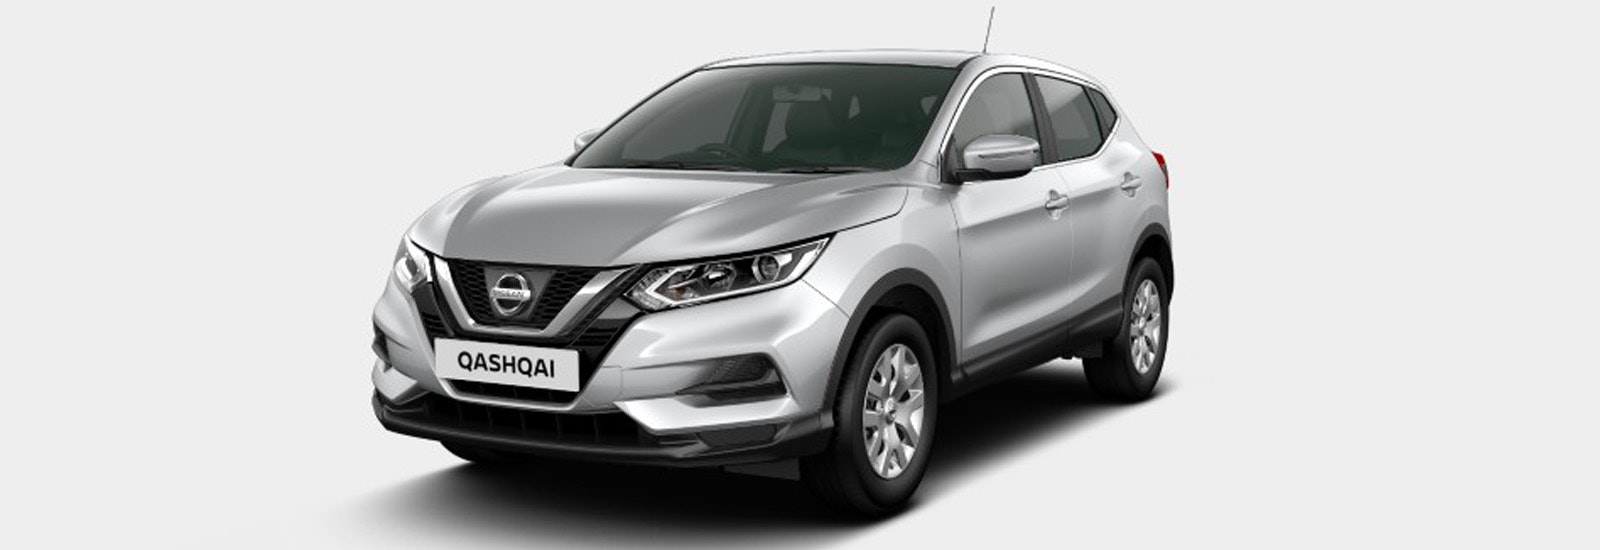 Auto Paint Colors >> Nissan Qashqai colours guide and prices | carwow